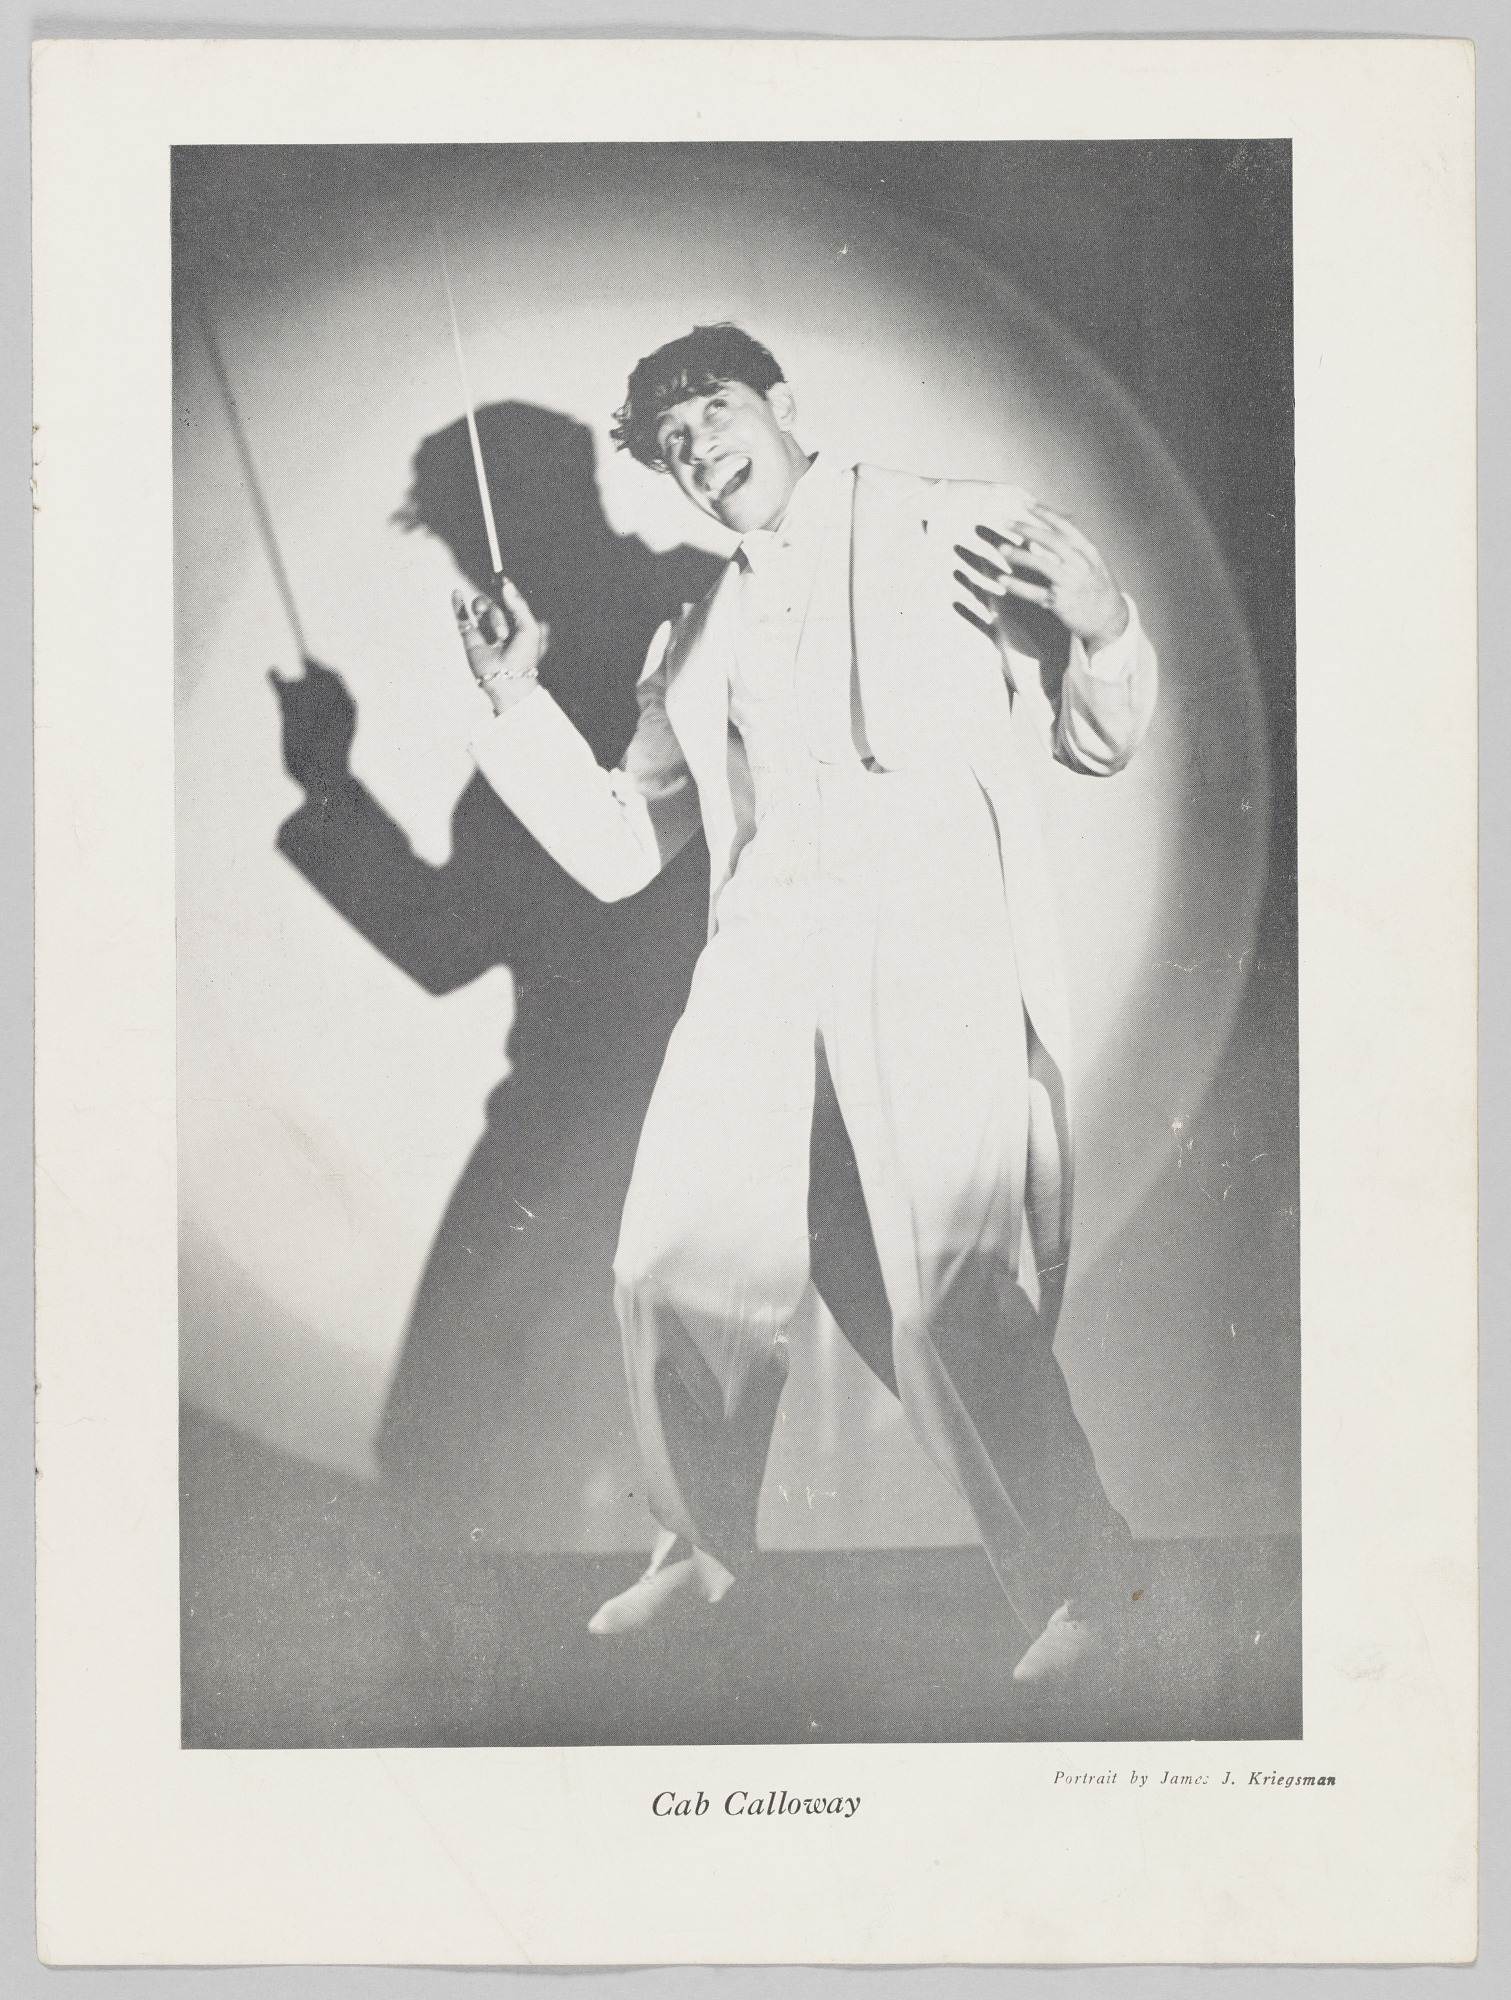 Loose pages from a magazine about the Cotton Club